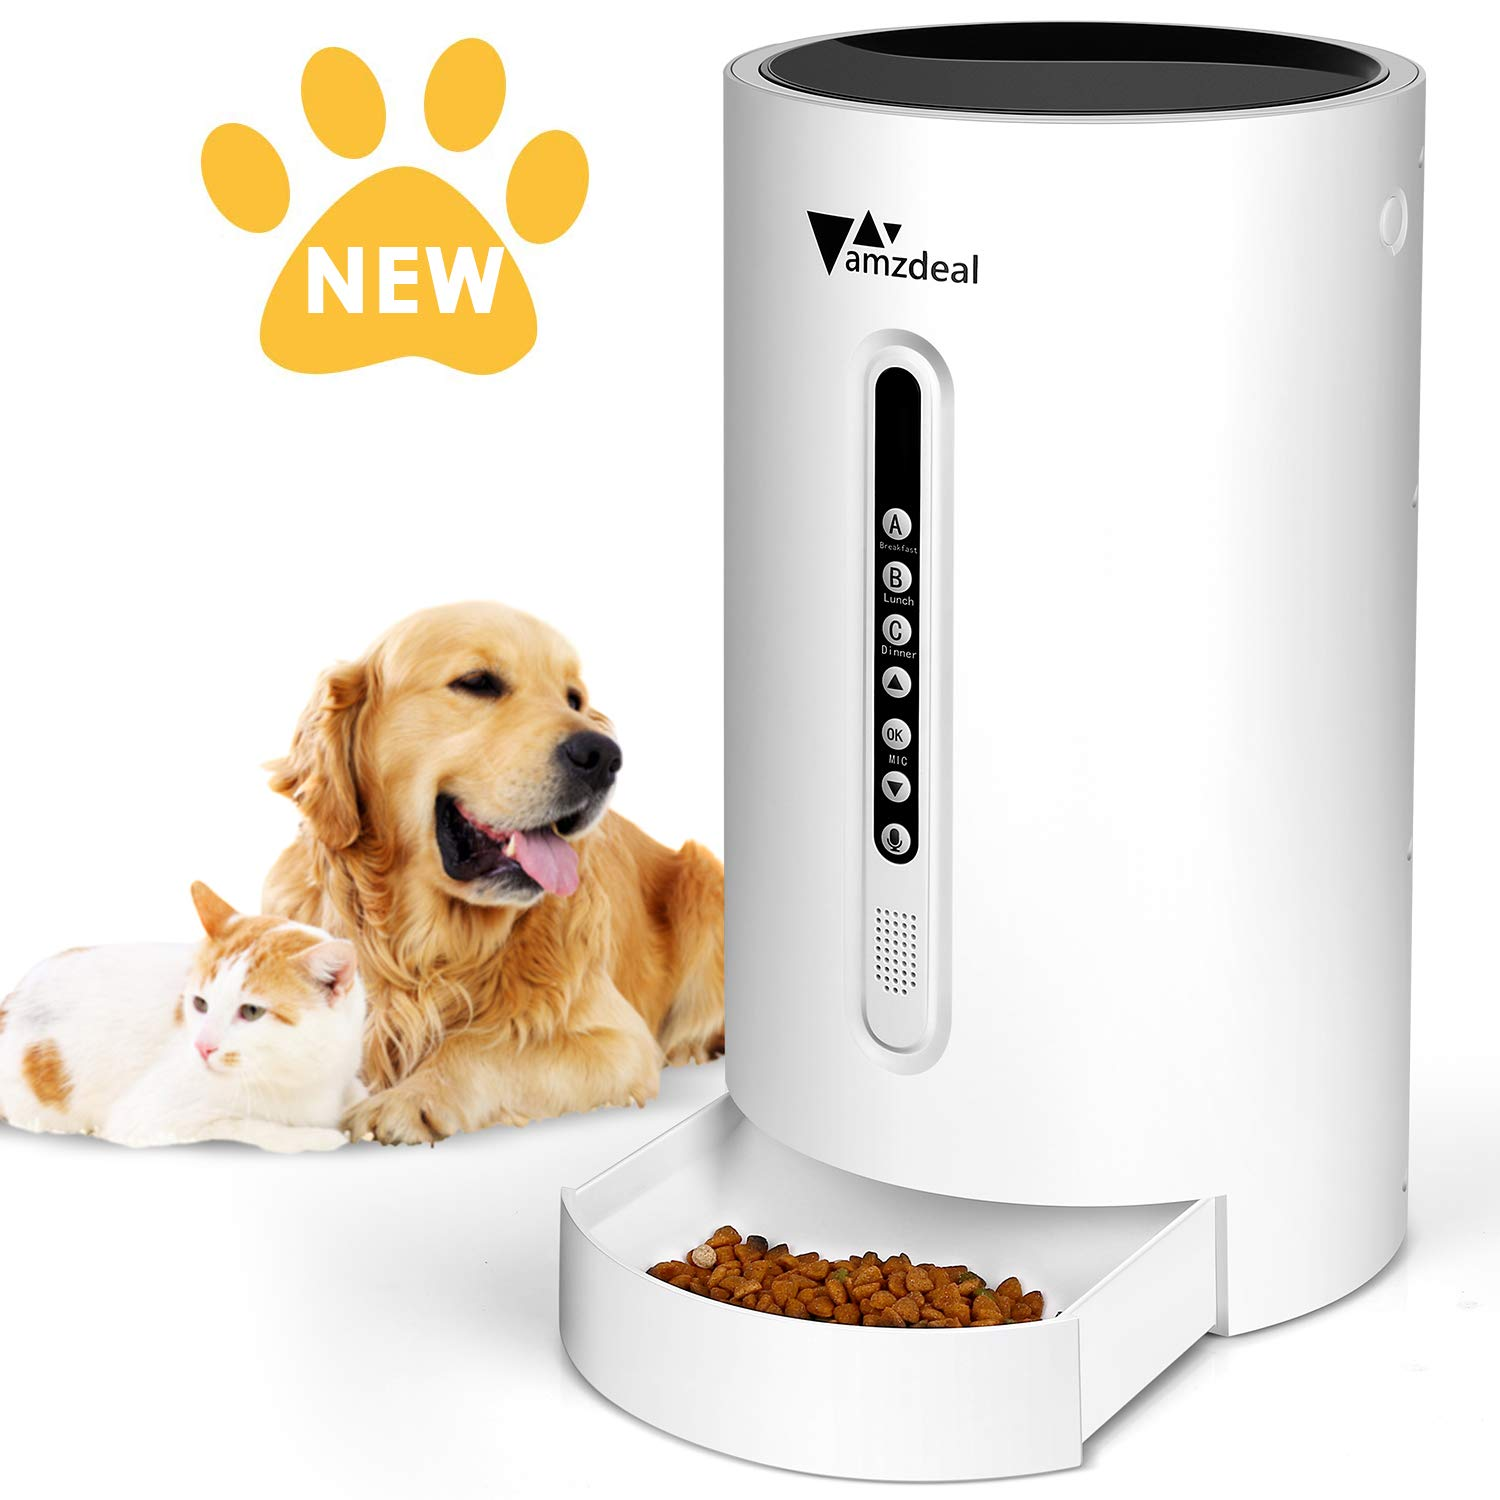 amzdeal Automatic Cat Feeder Dog Feeder Cat Food Dispenser with Programmable Meal Size and Time, 4 Meals per Day, Suitable for Dog and Cat by amzdeal